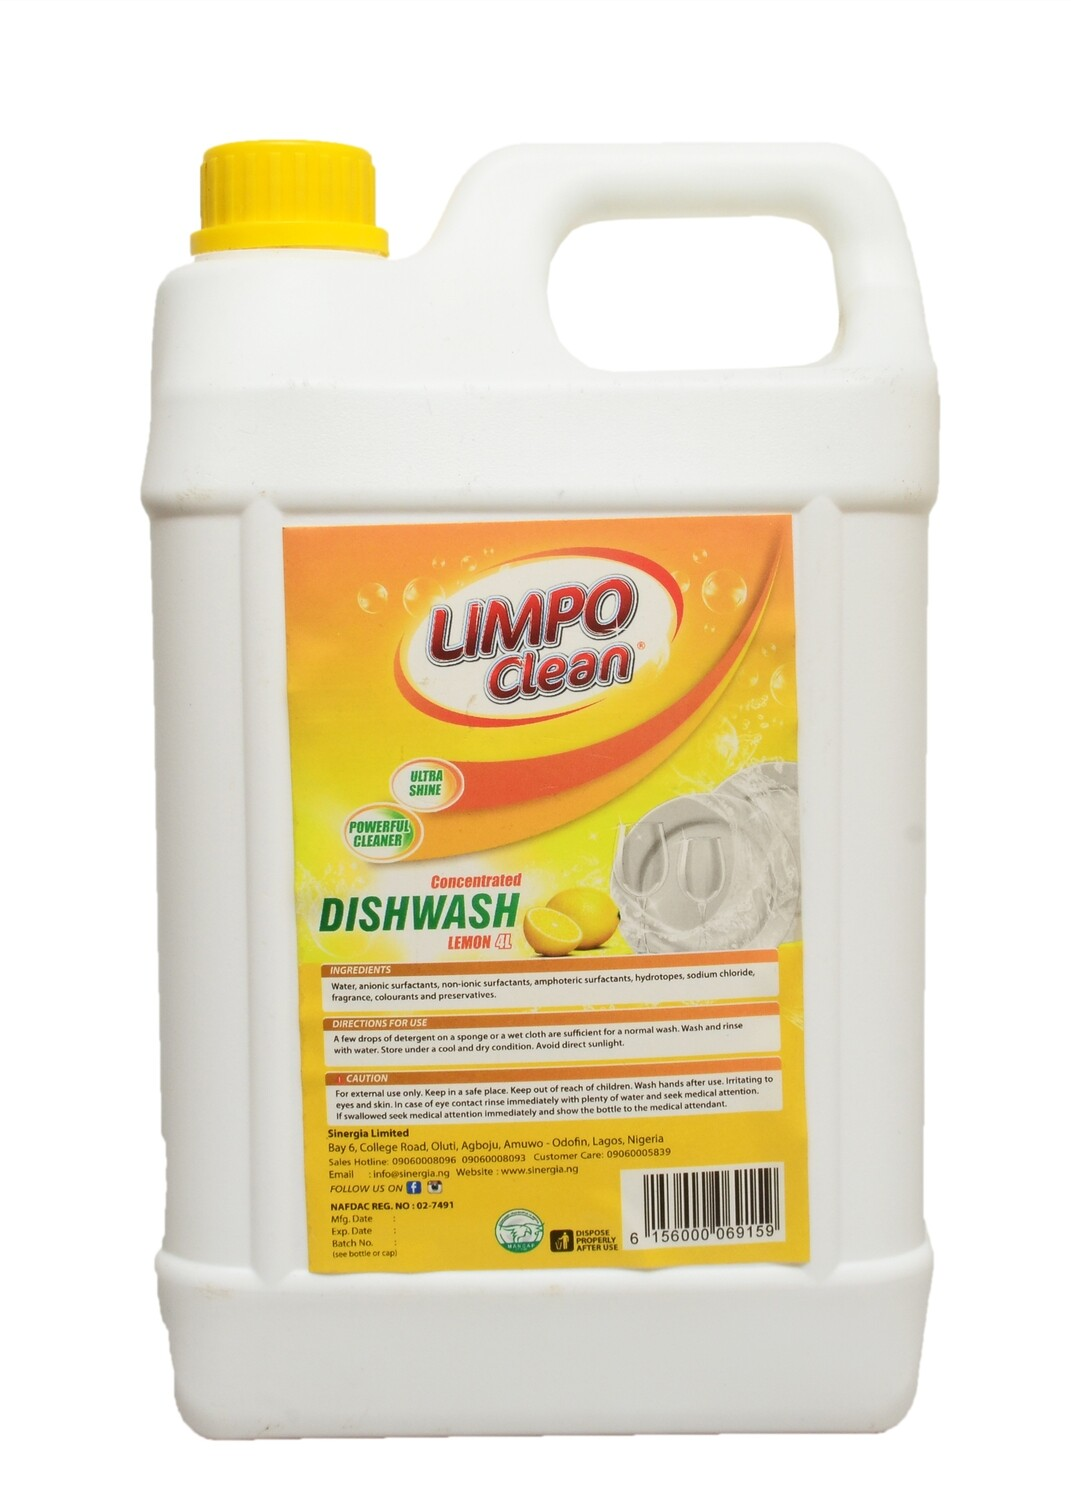 LIMPO CLEAN CONCENTRATED DISHWASH LEMON 4L